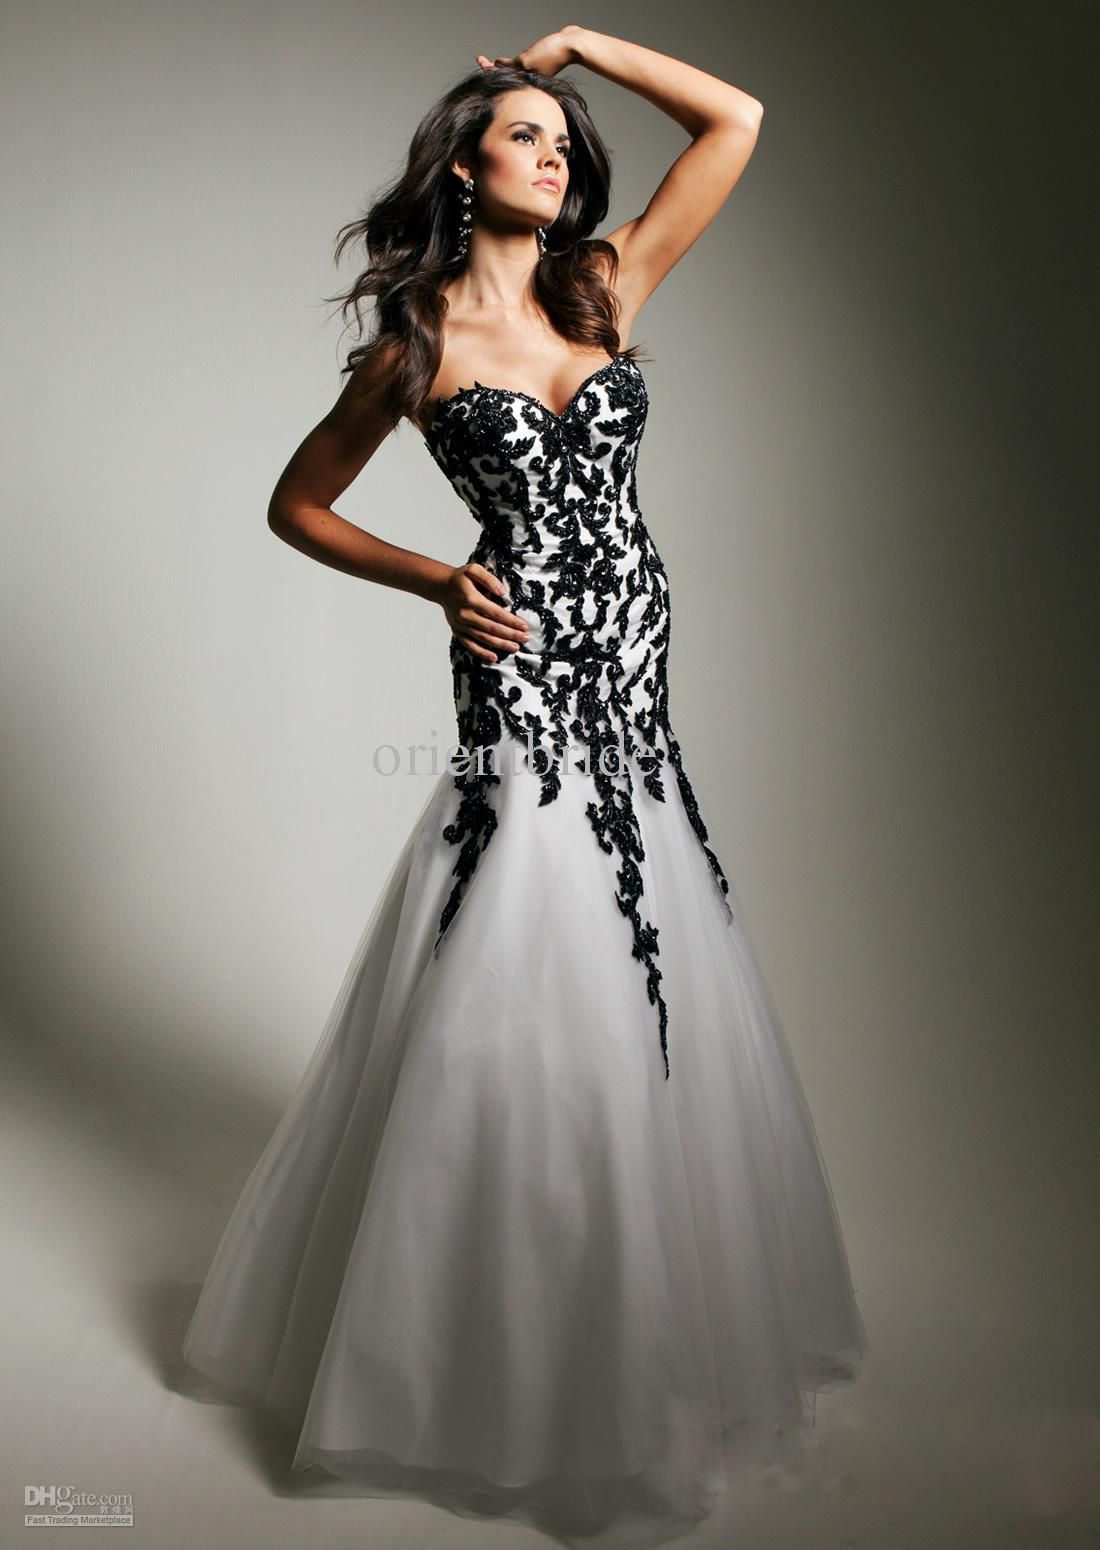 78 Best images about Prom on Pinterest - Long prom dresses- Prom ...